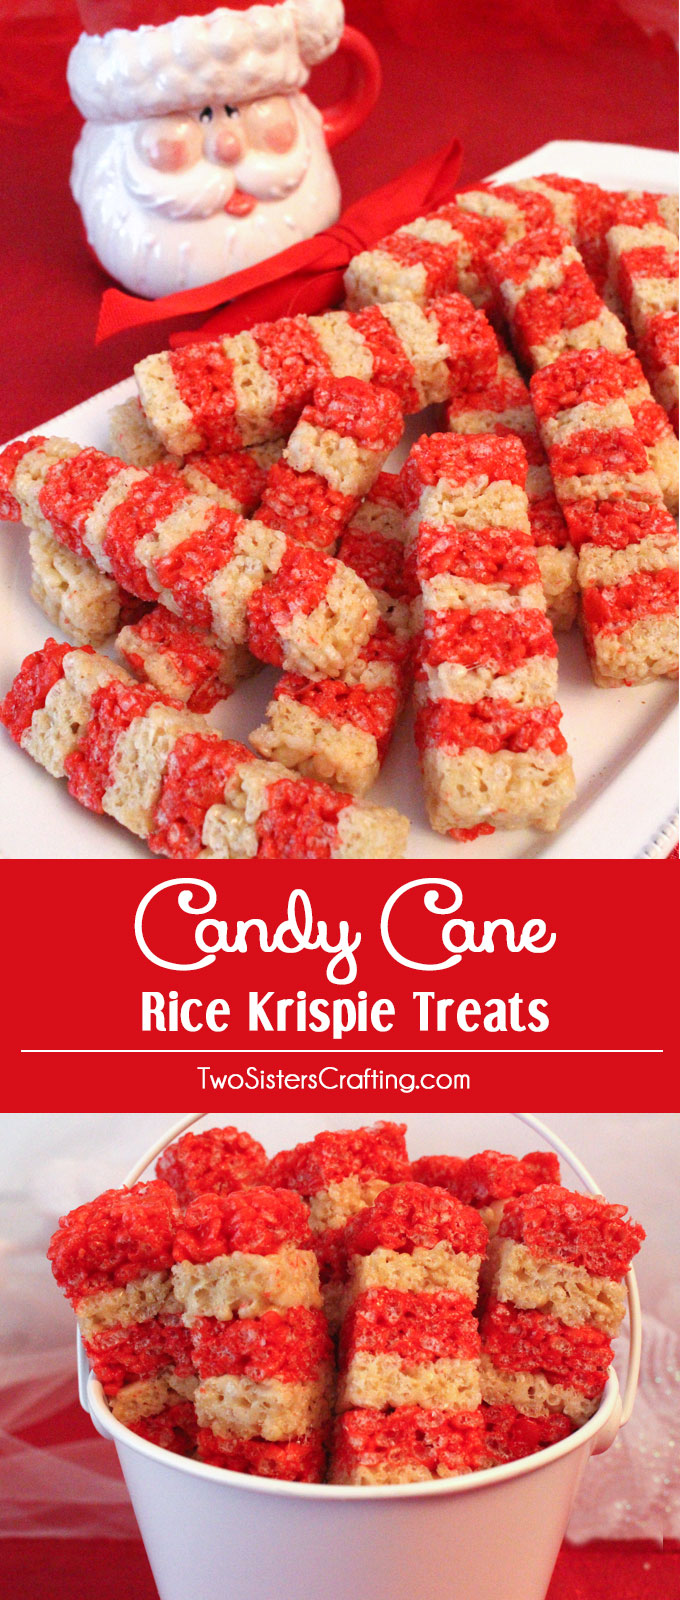 Candy Cane Rice Krispie Treats are adorable, delicious and make the perfect Christmas Dessert. Easy to make, these super colorful and festive Christmas Treats will definitely stand out on a Christmas Dessert Table. Follow us for more fun Christmas Food ideas.